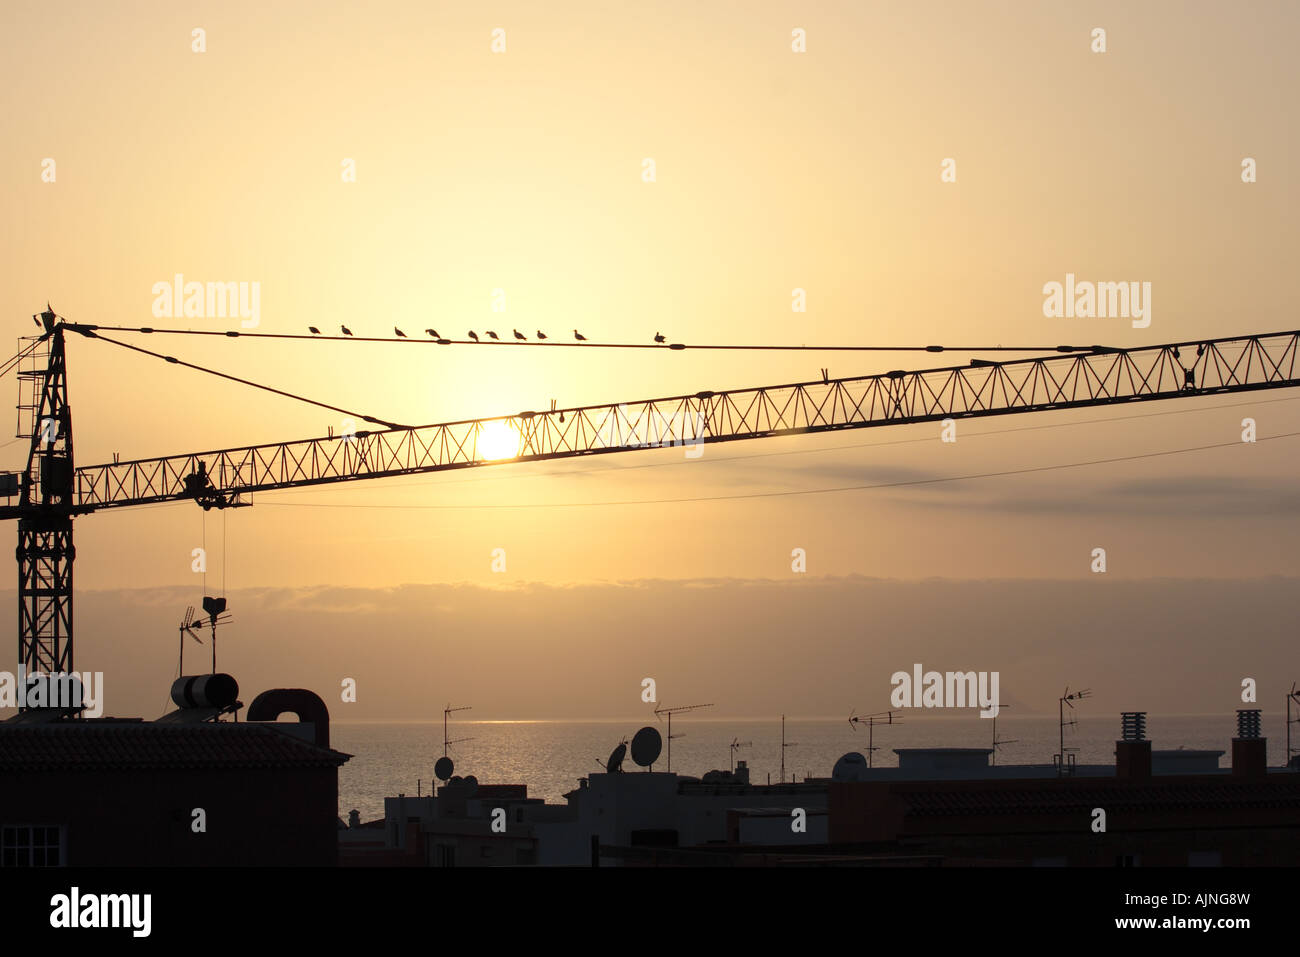 seagulls-in-silhouette-on-a-crane-in-pla